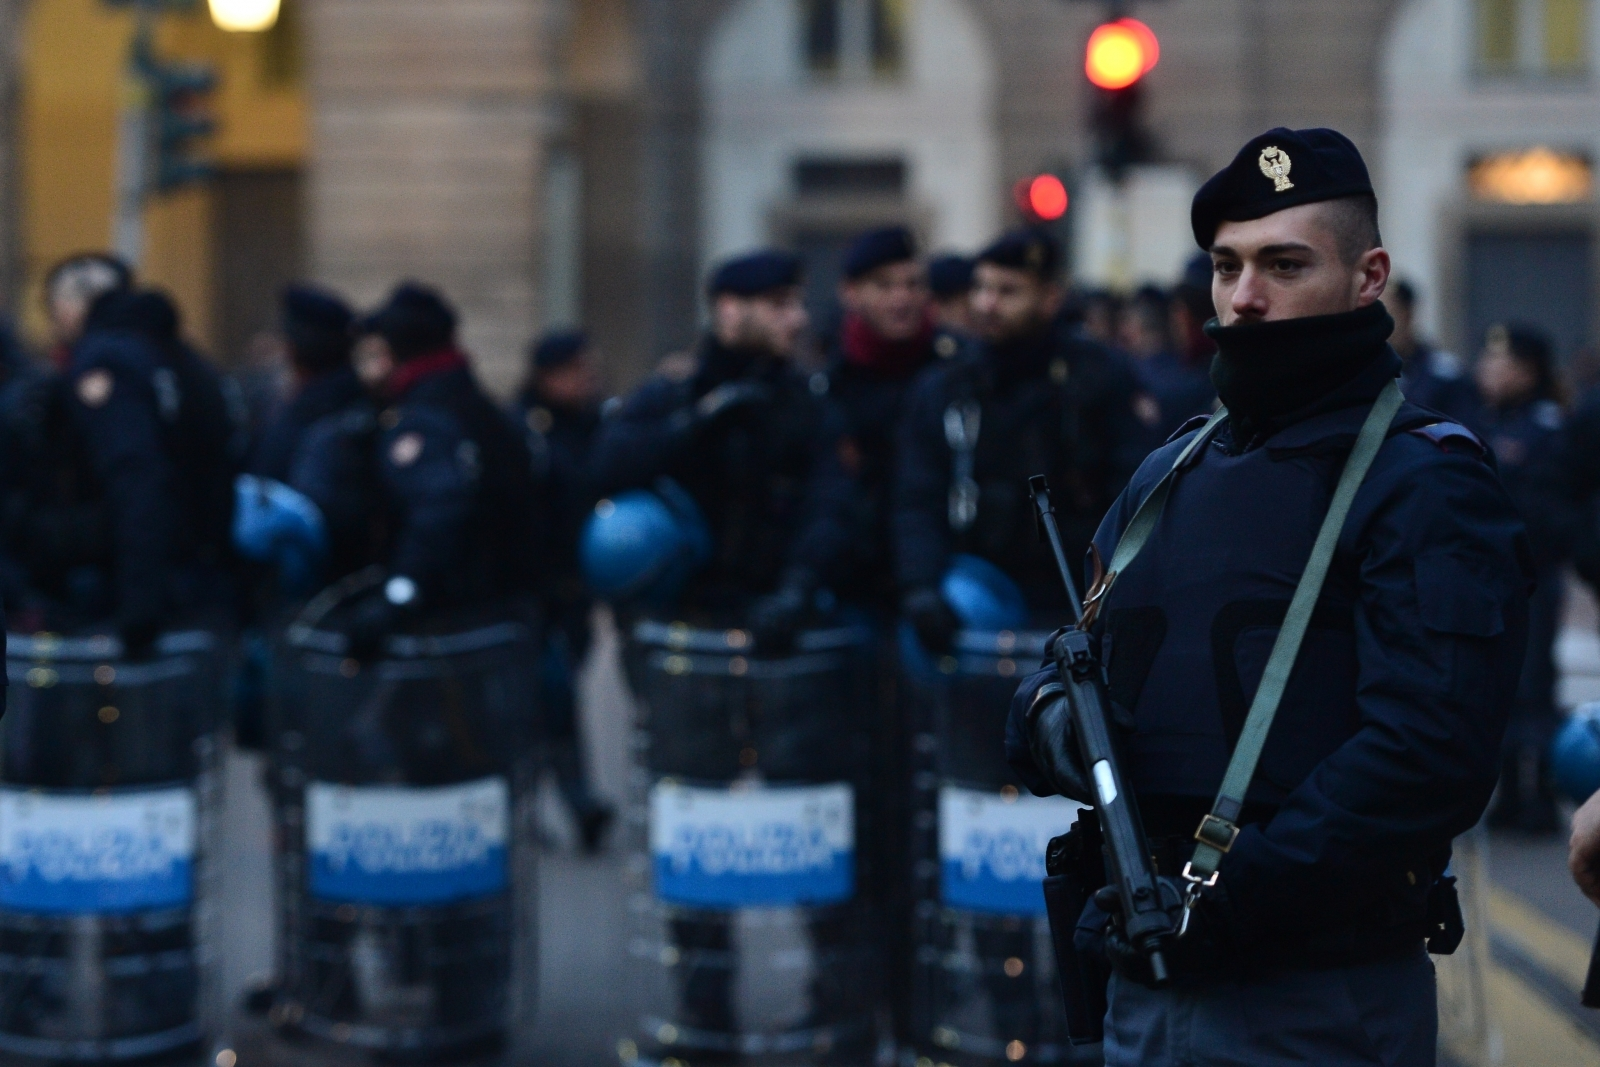 Italy police